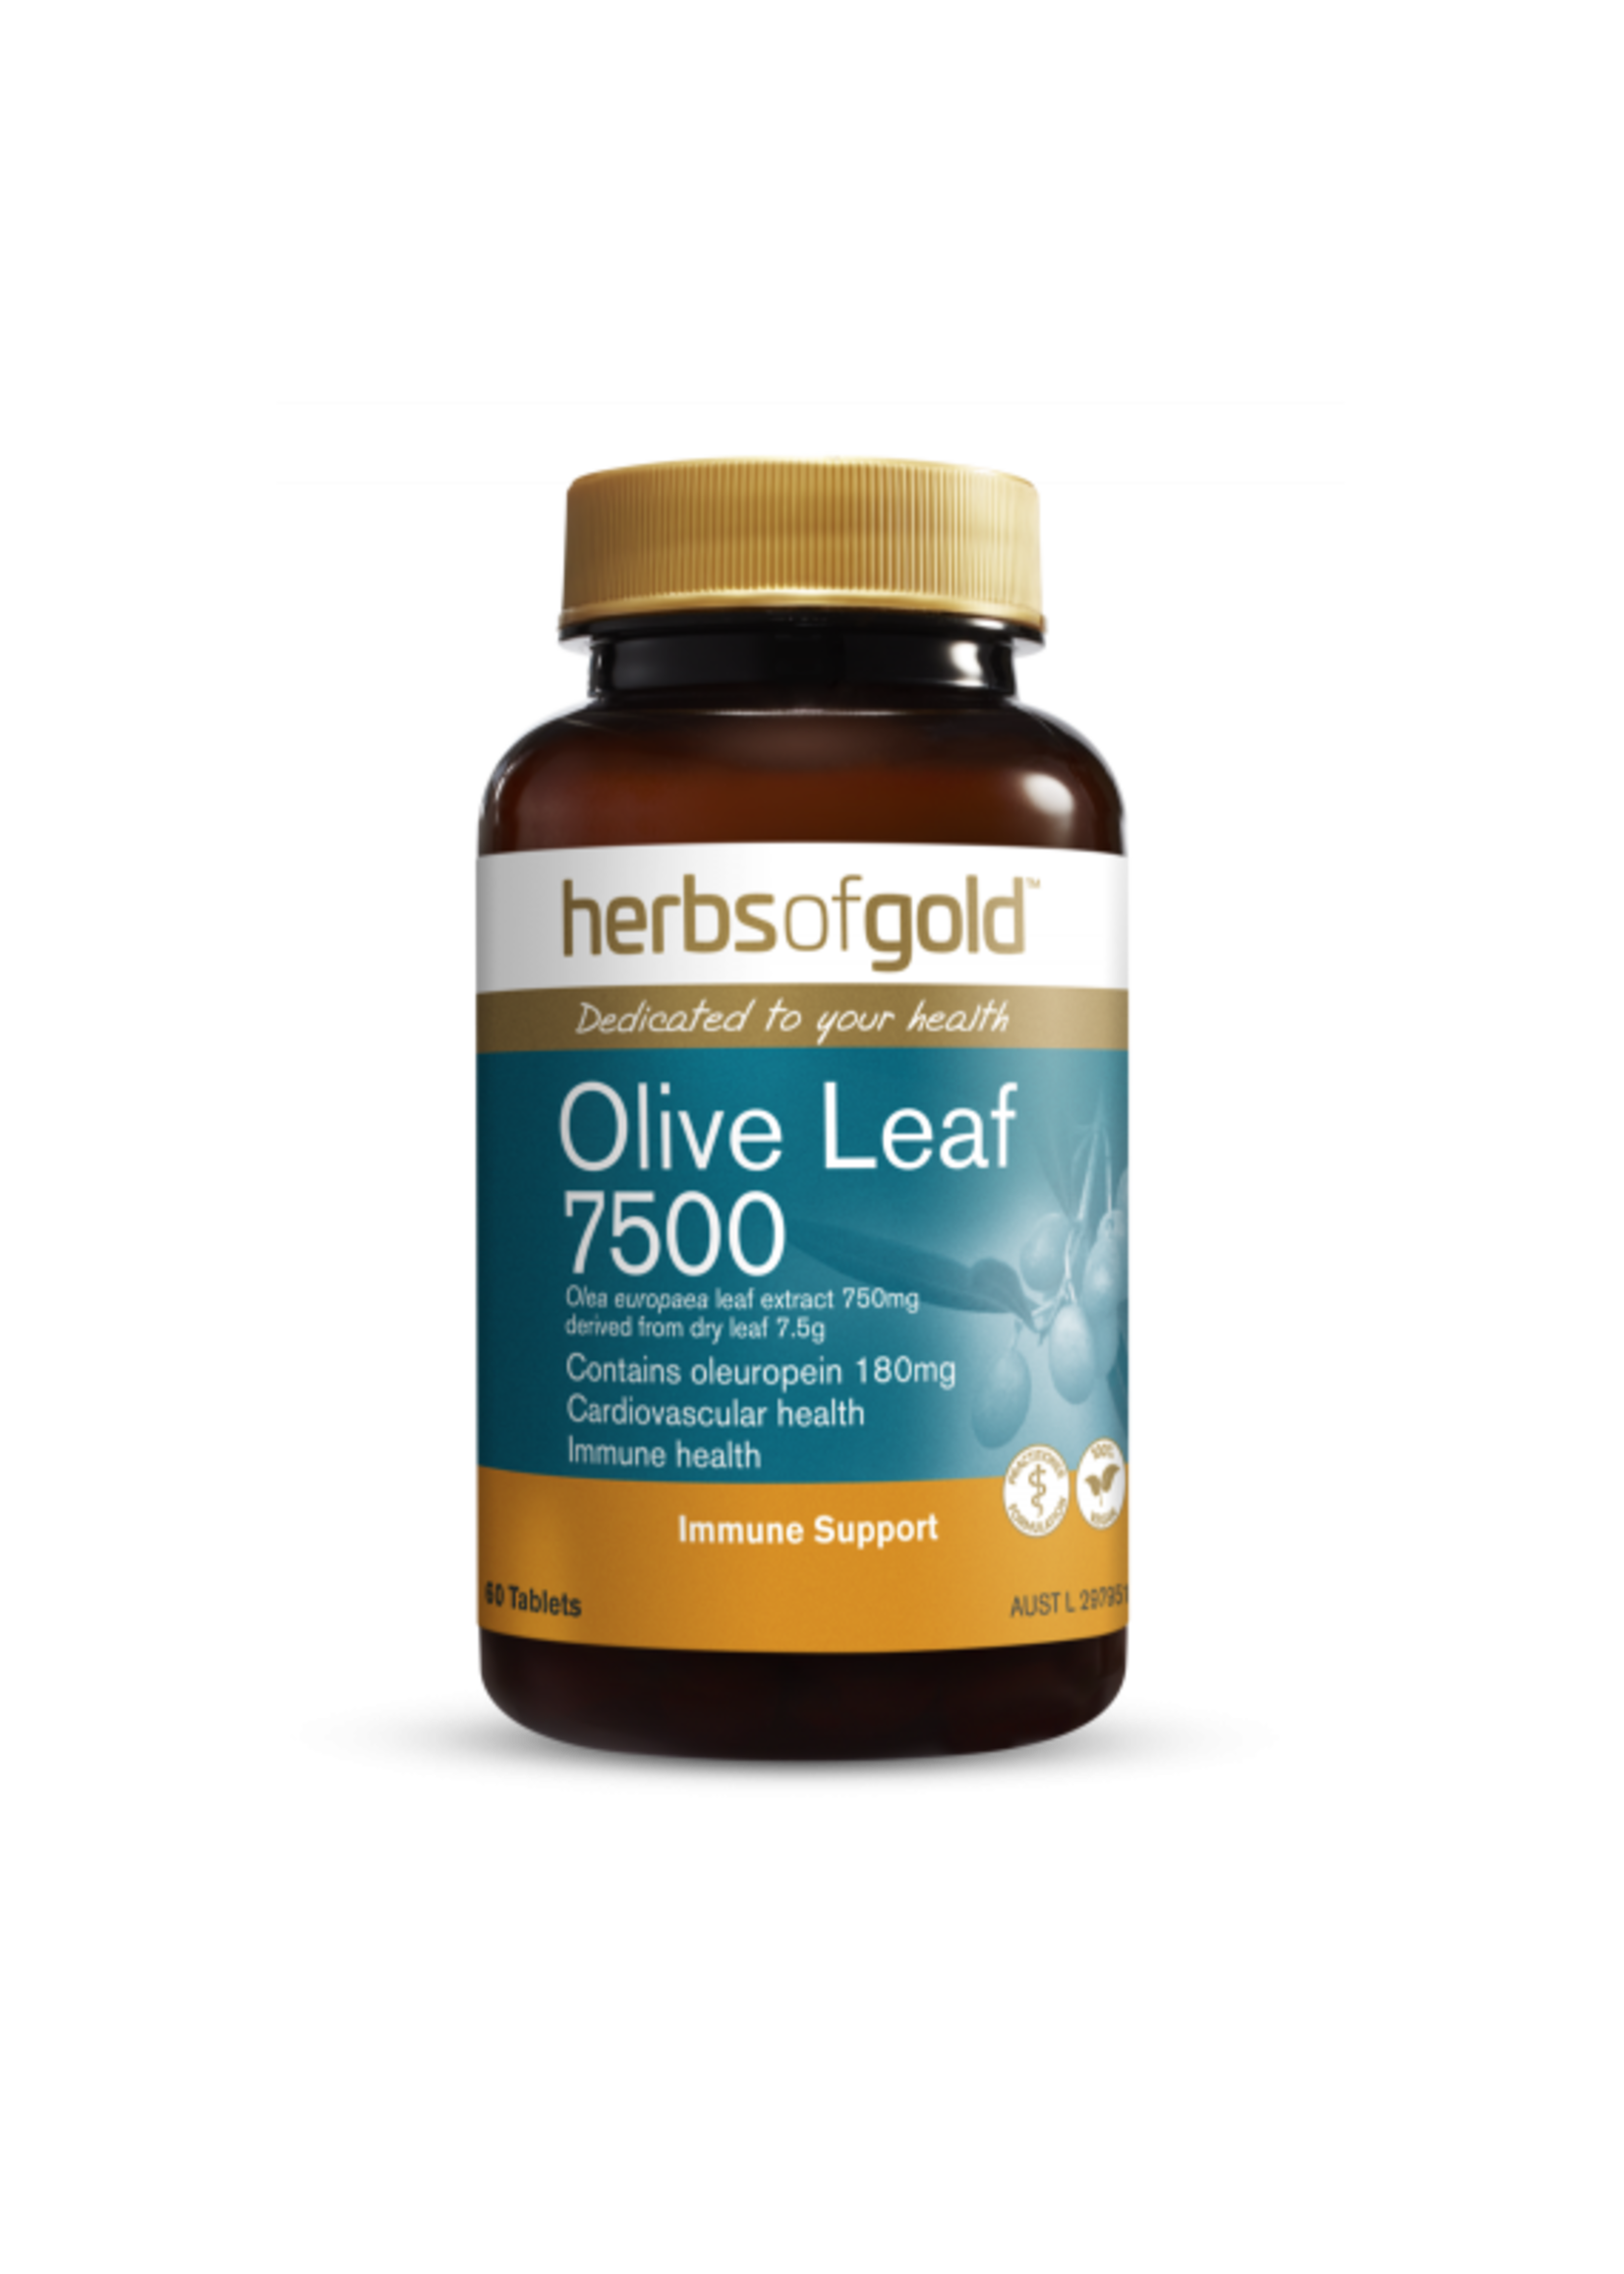 Herbs of Gold Herbs of Gold Olive Leaf  7500 Immune Support 60 tablets